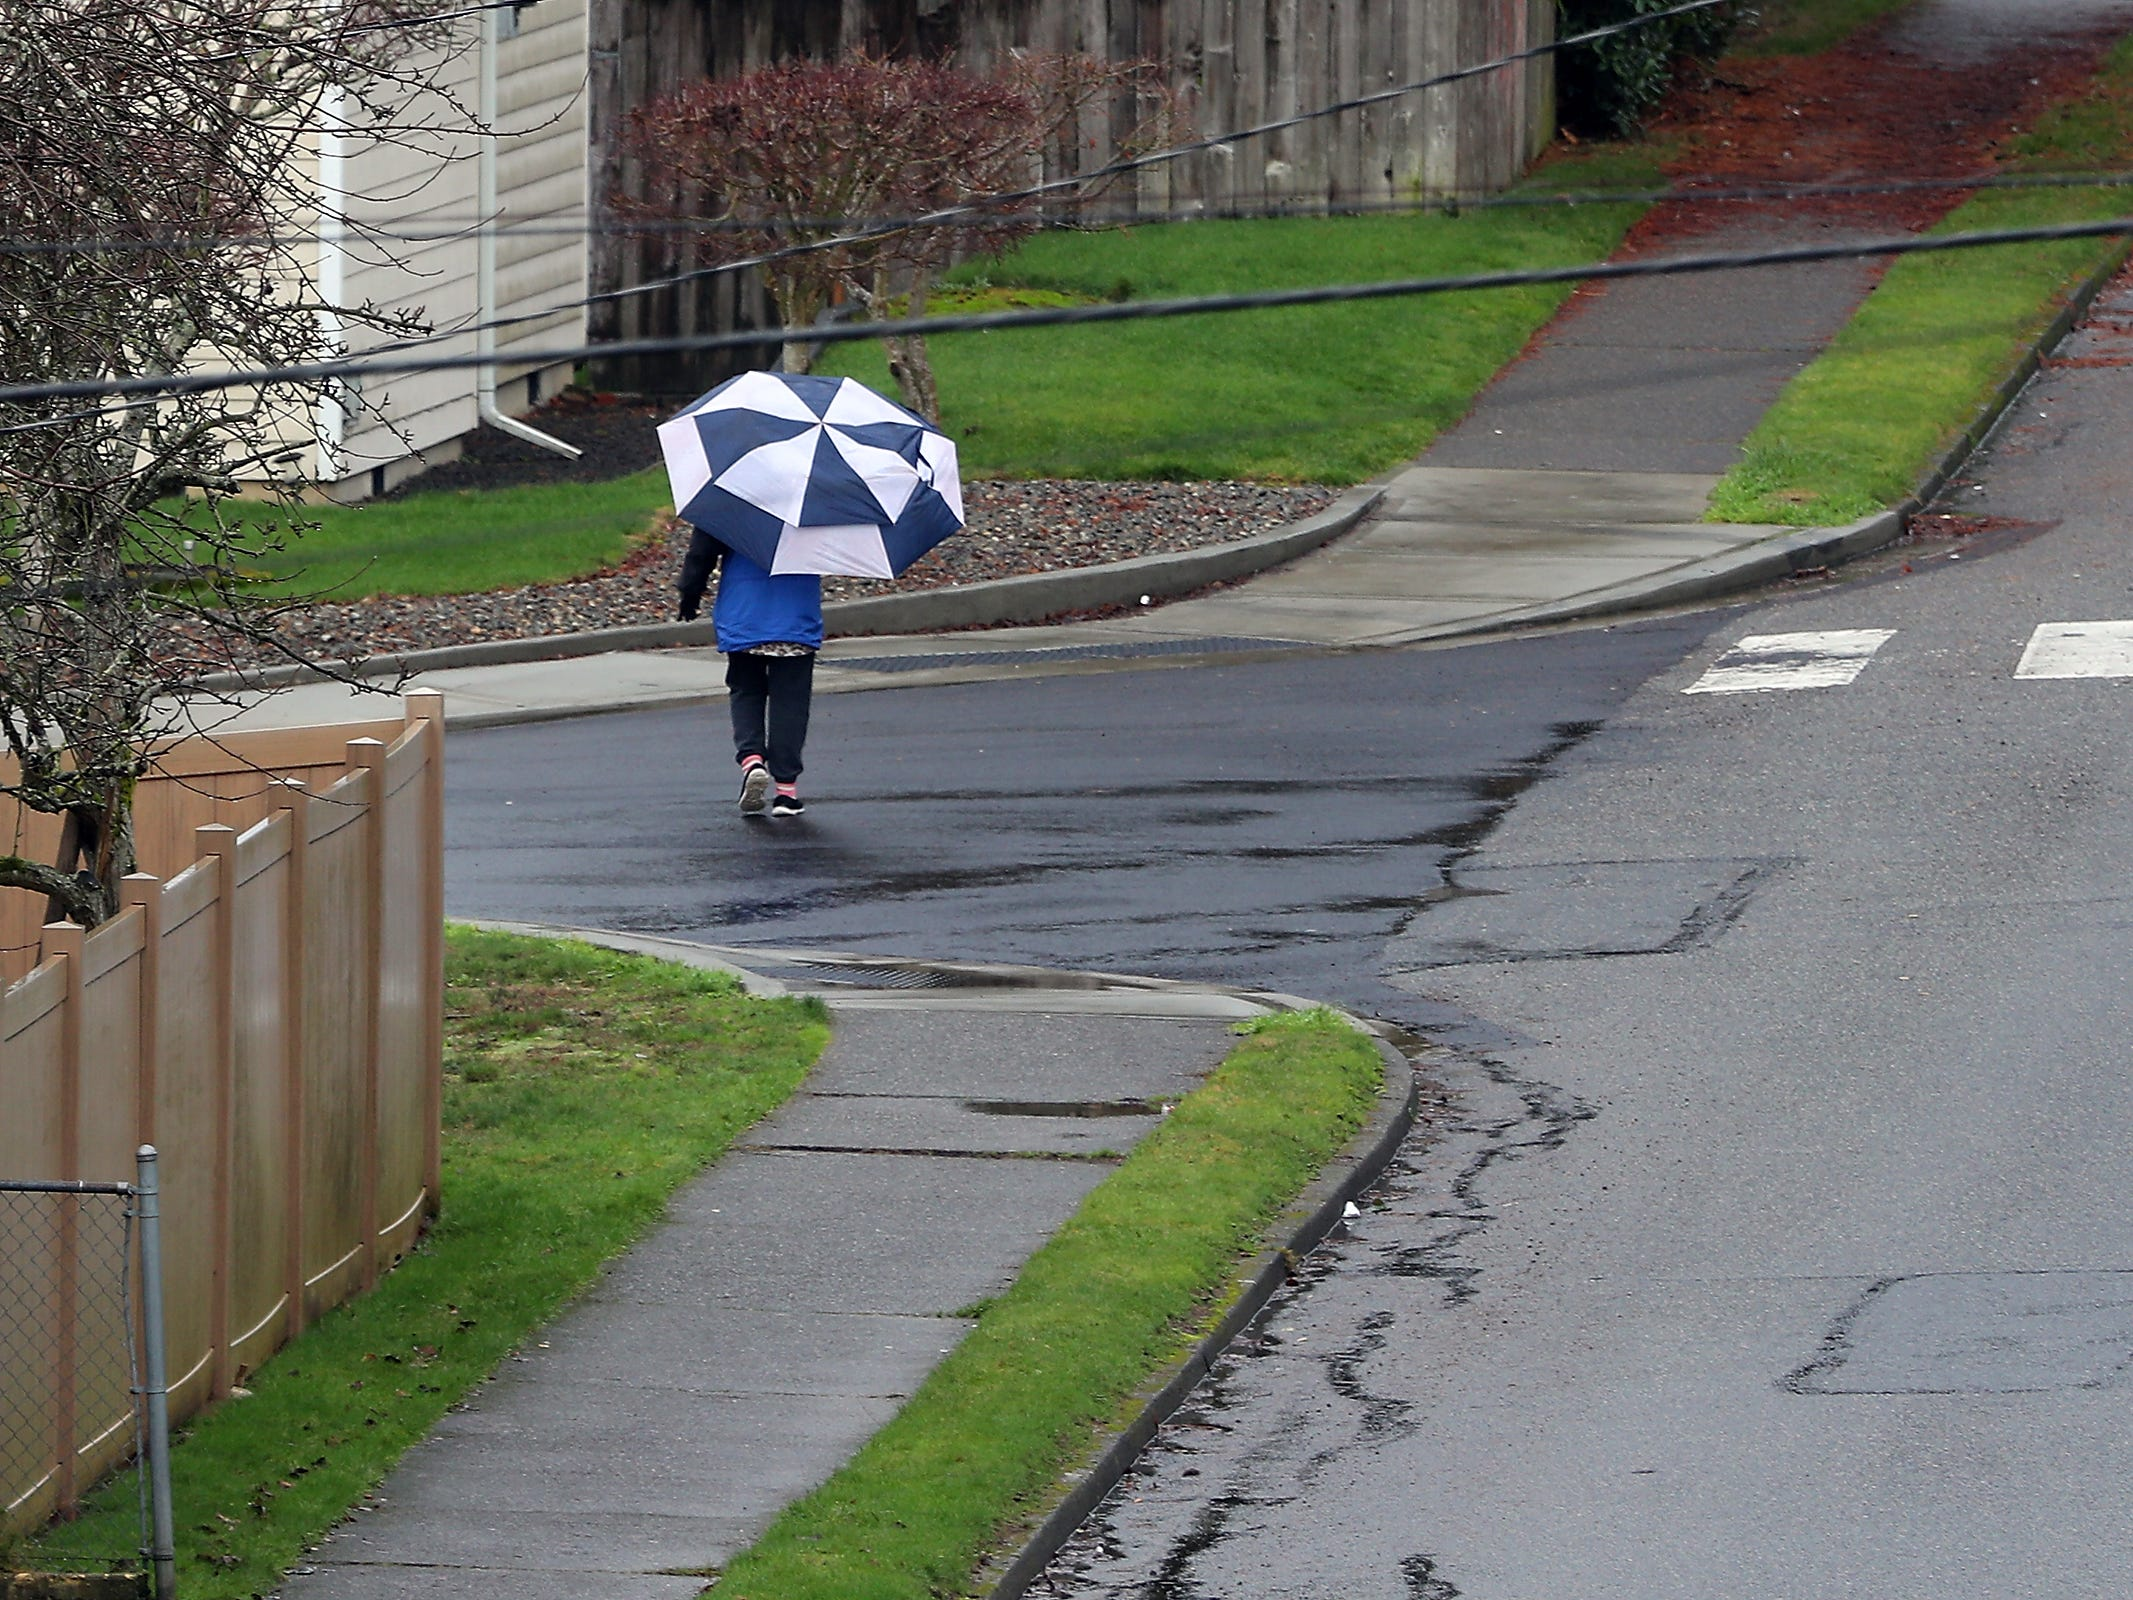 An umbrella toting pedestrian crosses Birch Ave. in Bremerton on Tuesday, January 8, 2019.